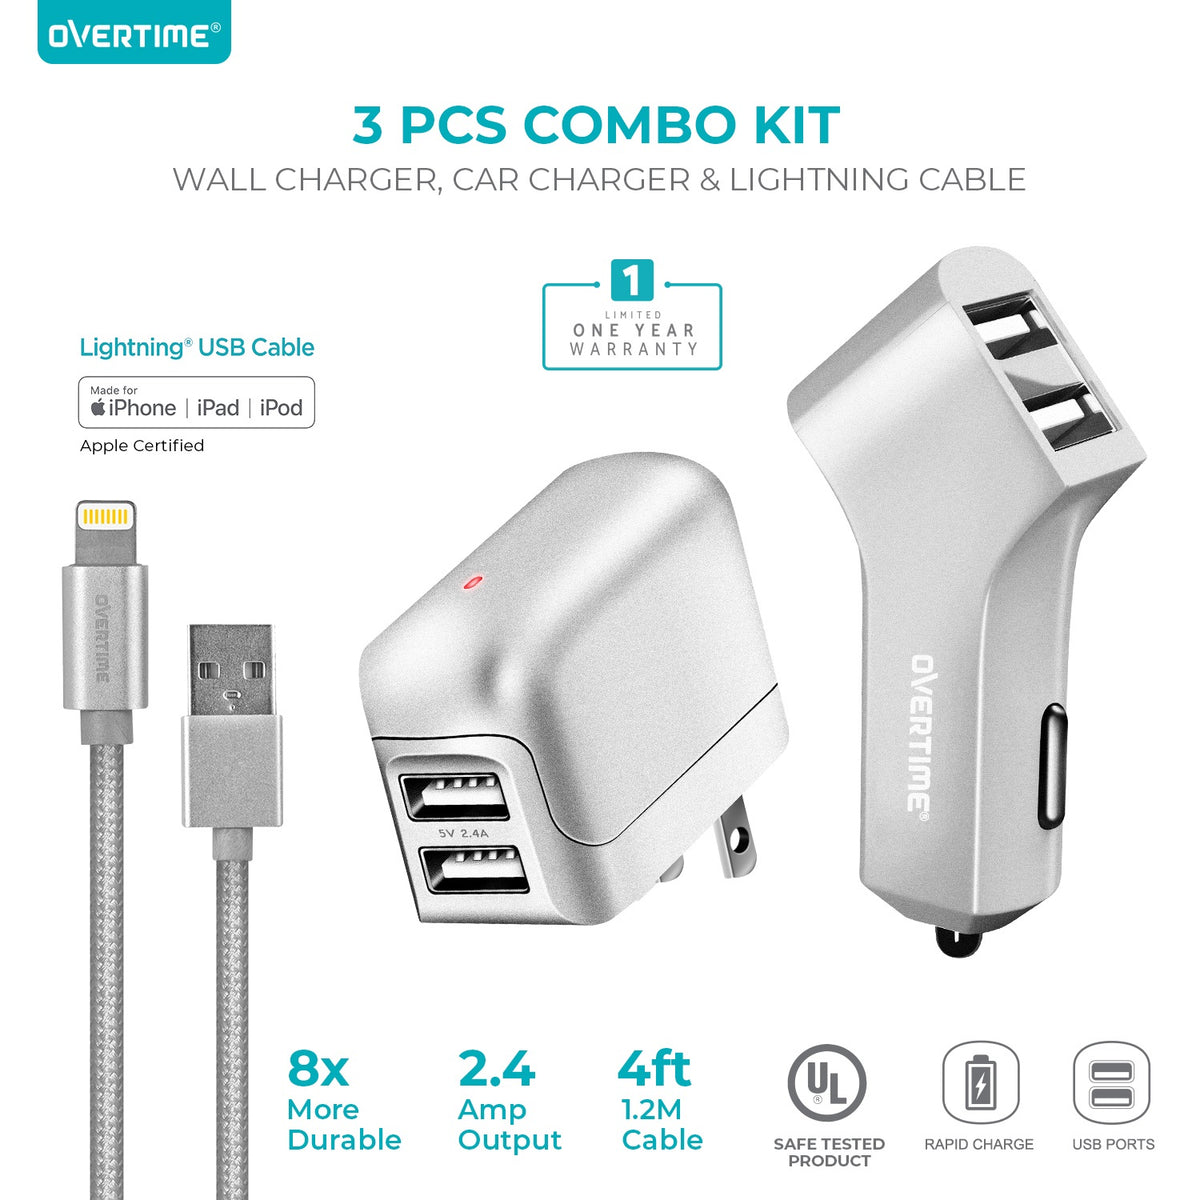 Car & Wall Charger 2.4A with Apple MFI Certified Lightning Cable